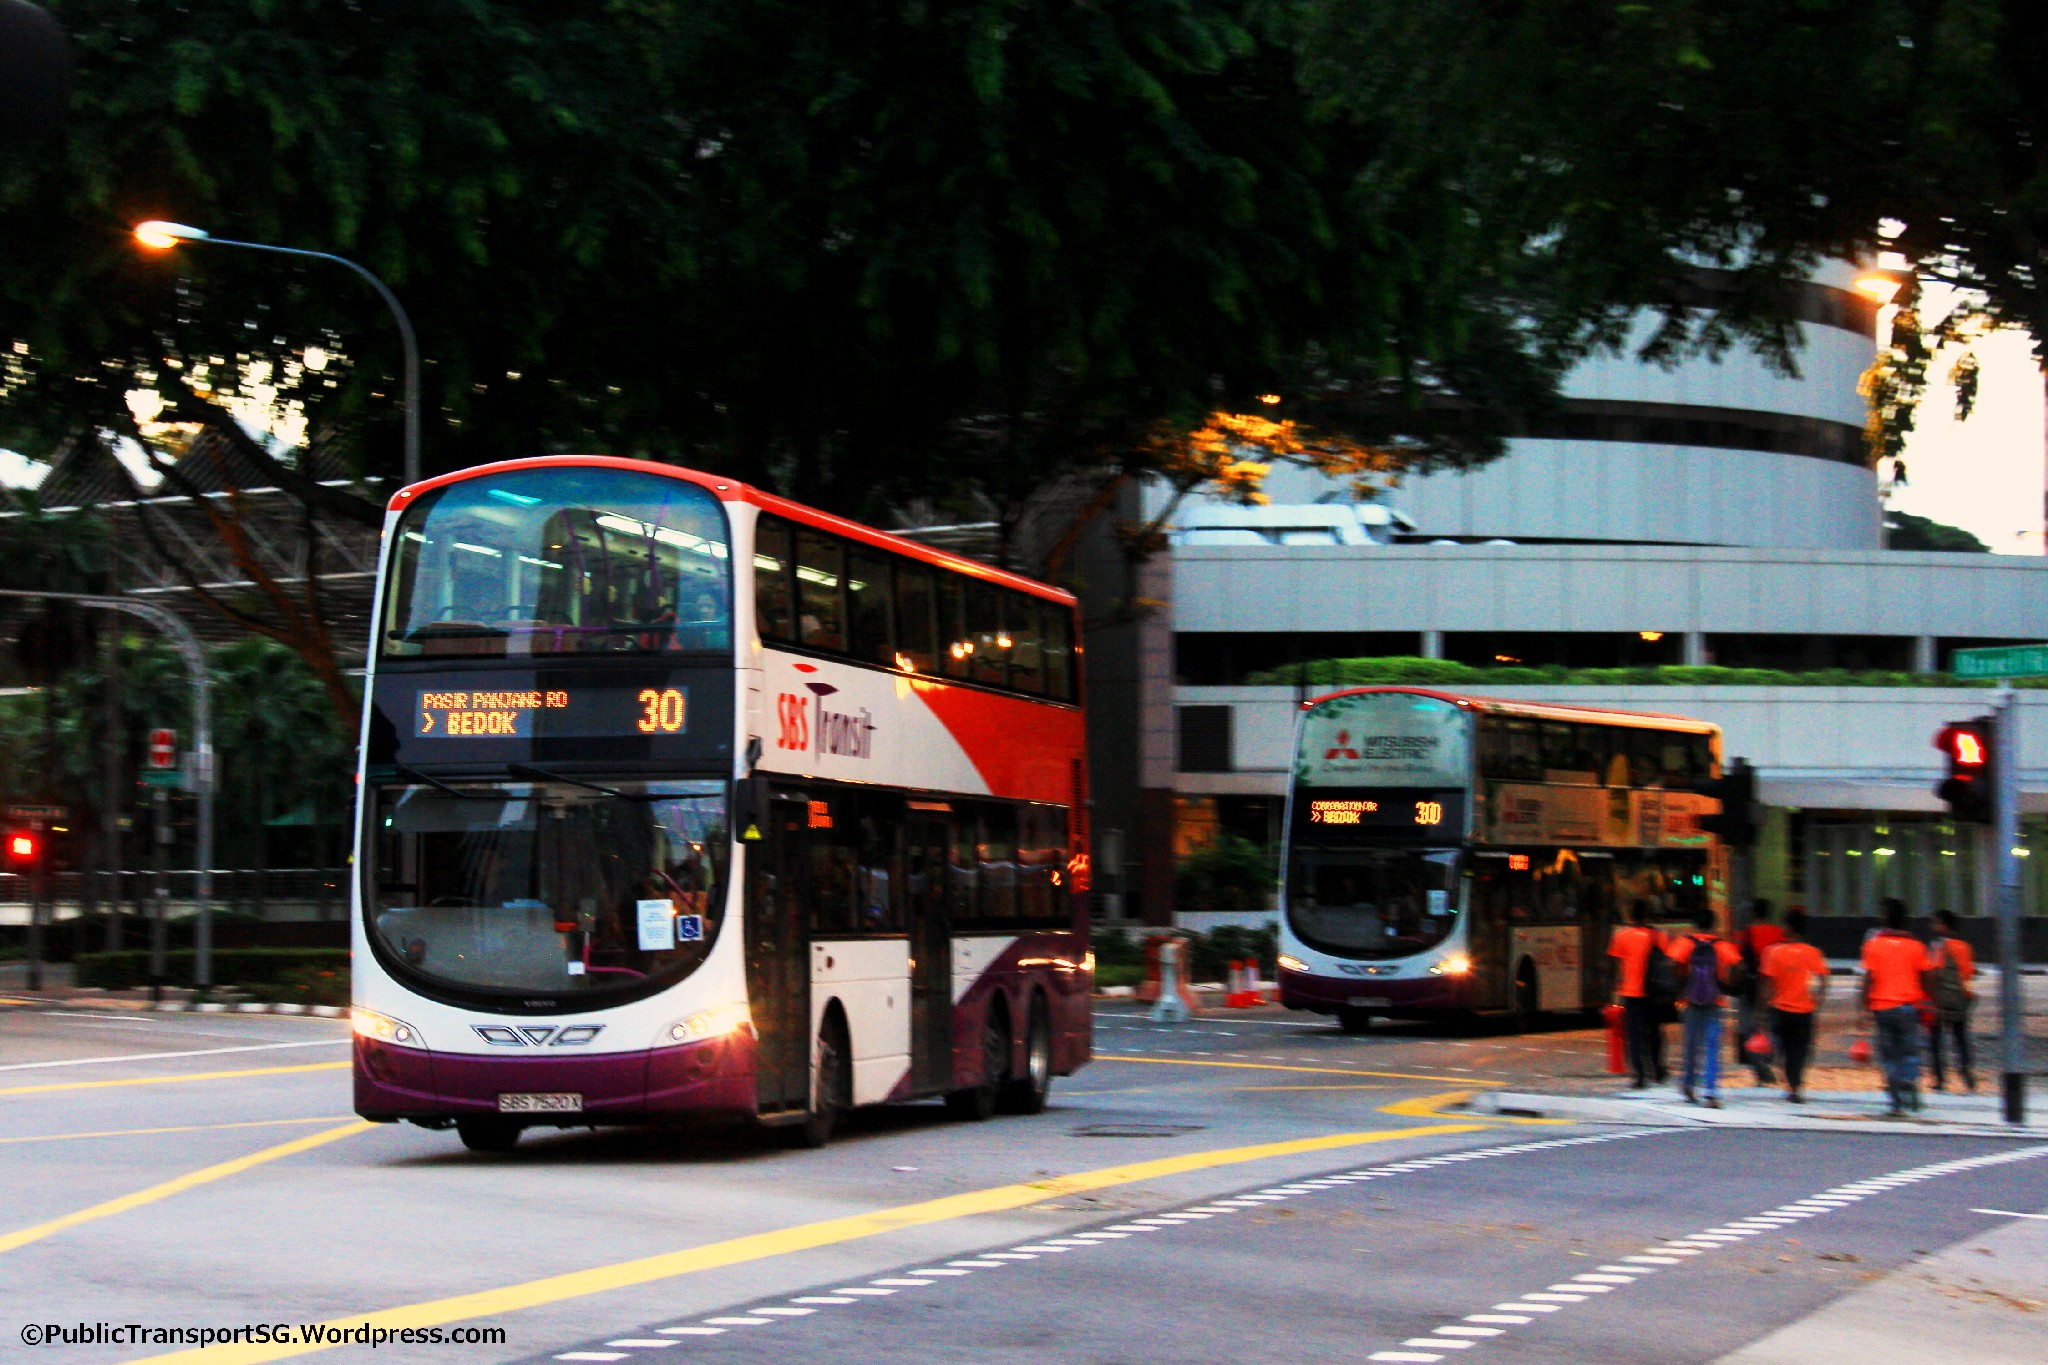 Service 30 bunching along Anson Rd / Cecil St